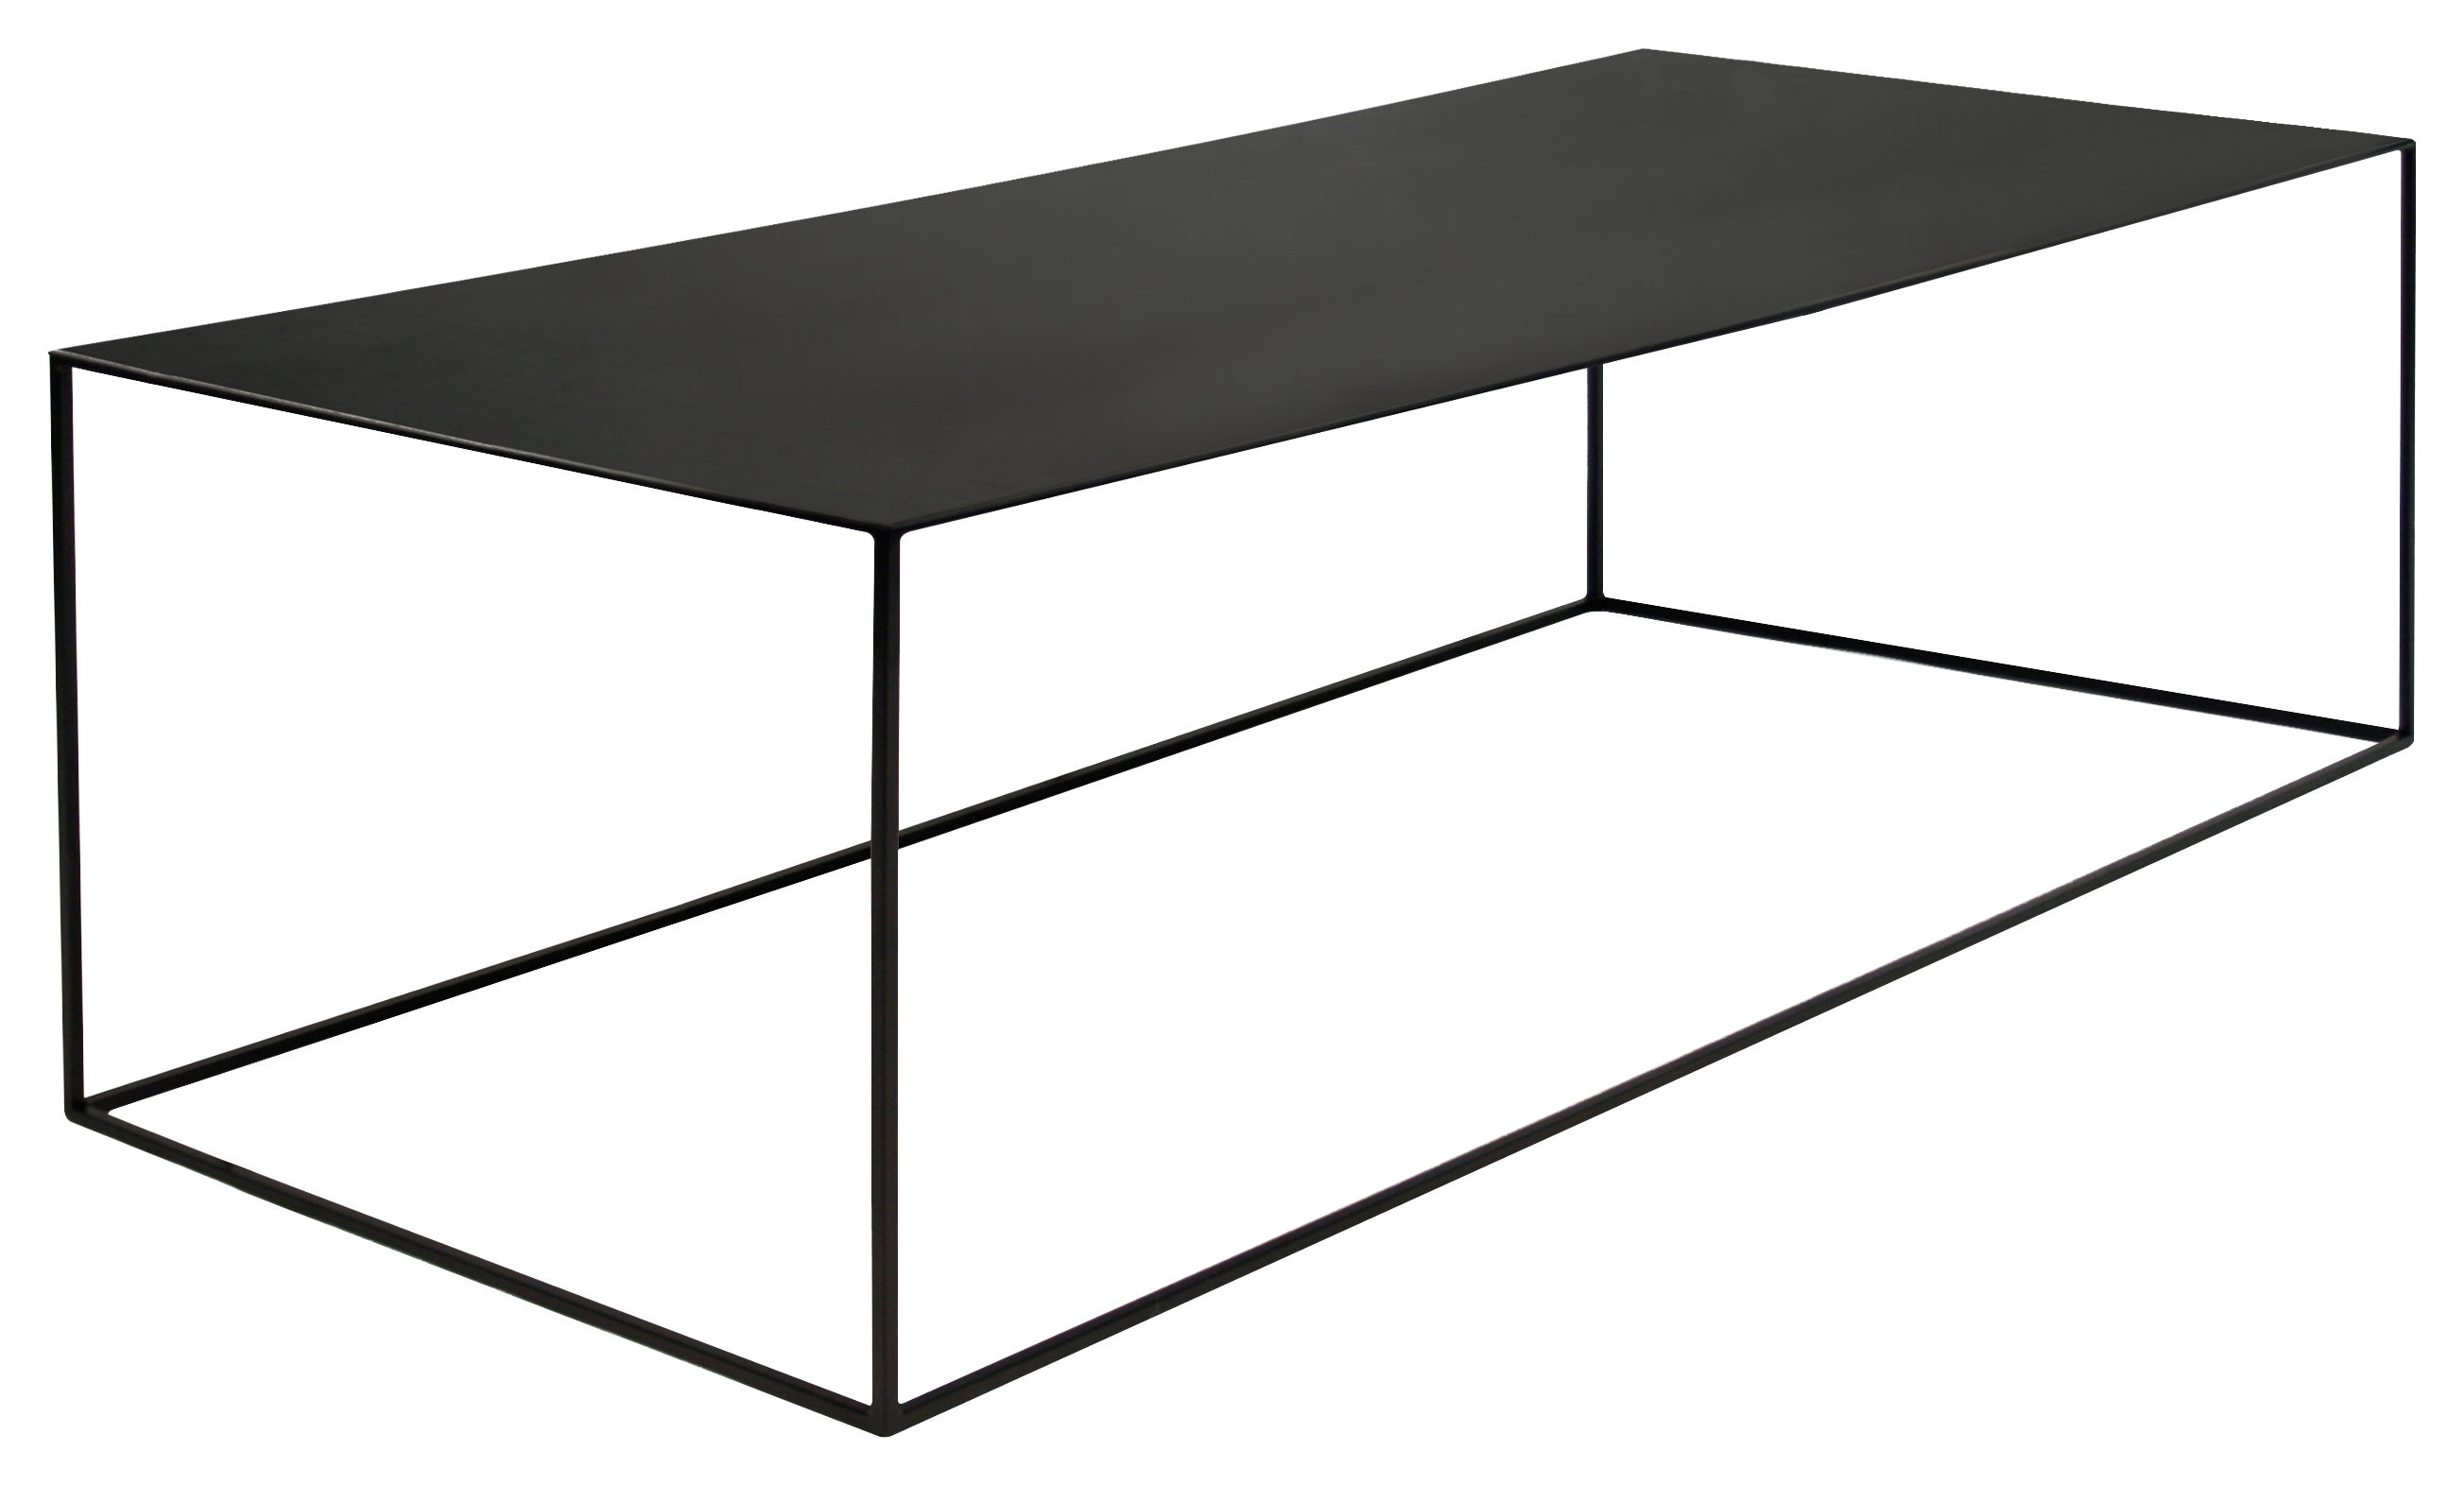 Table Noir Table Basse Slim Irony / 124 X 62 X H 34 Cm Métal Noir